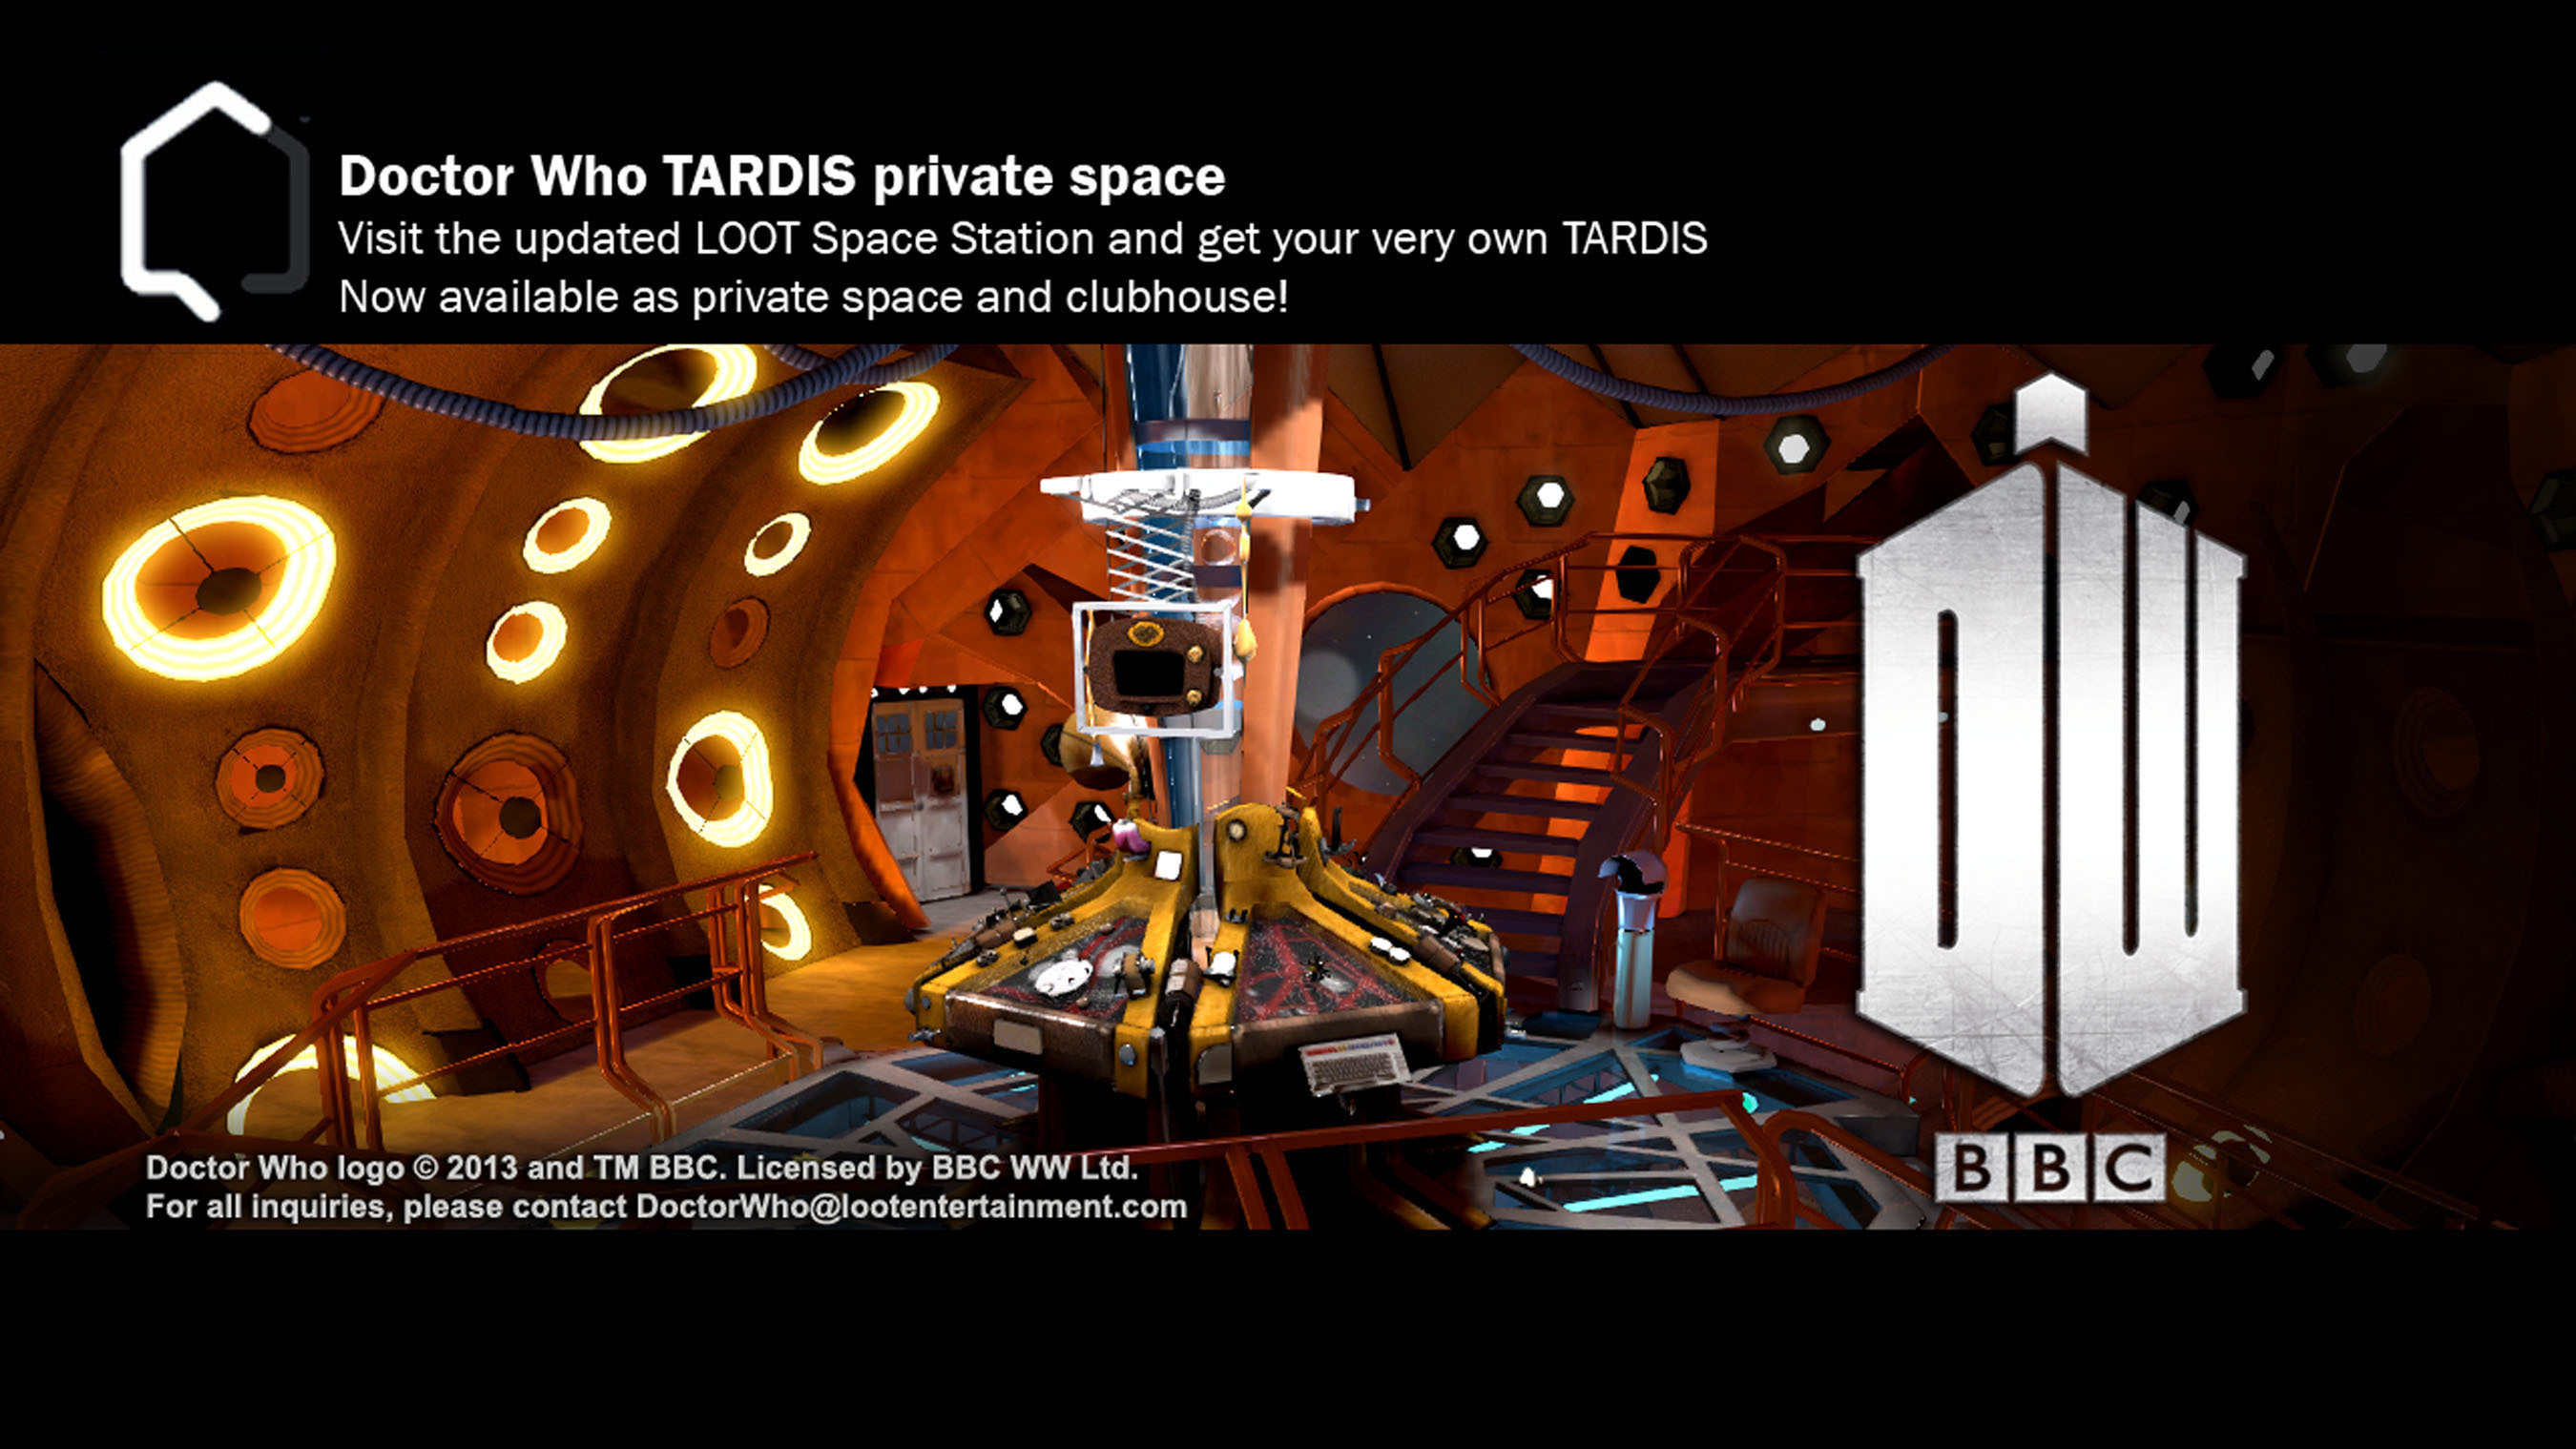 Doctor Who TARDIS Private Space Now Available. (PRNewsFoto/Sony DADC New Media Solutions) (PRNewsFoto/SONY DADC NEW MEDIA SOLUTIONS)